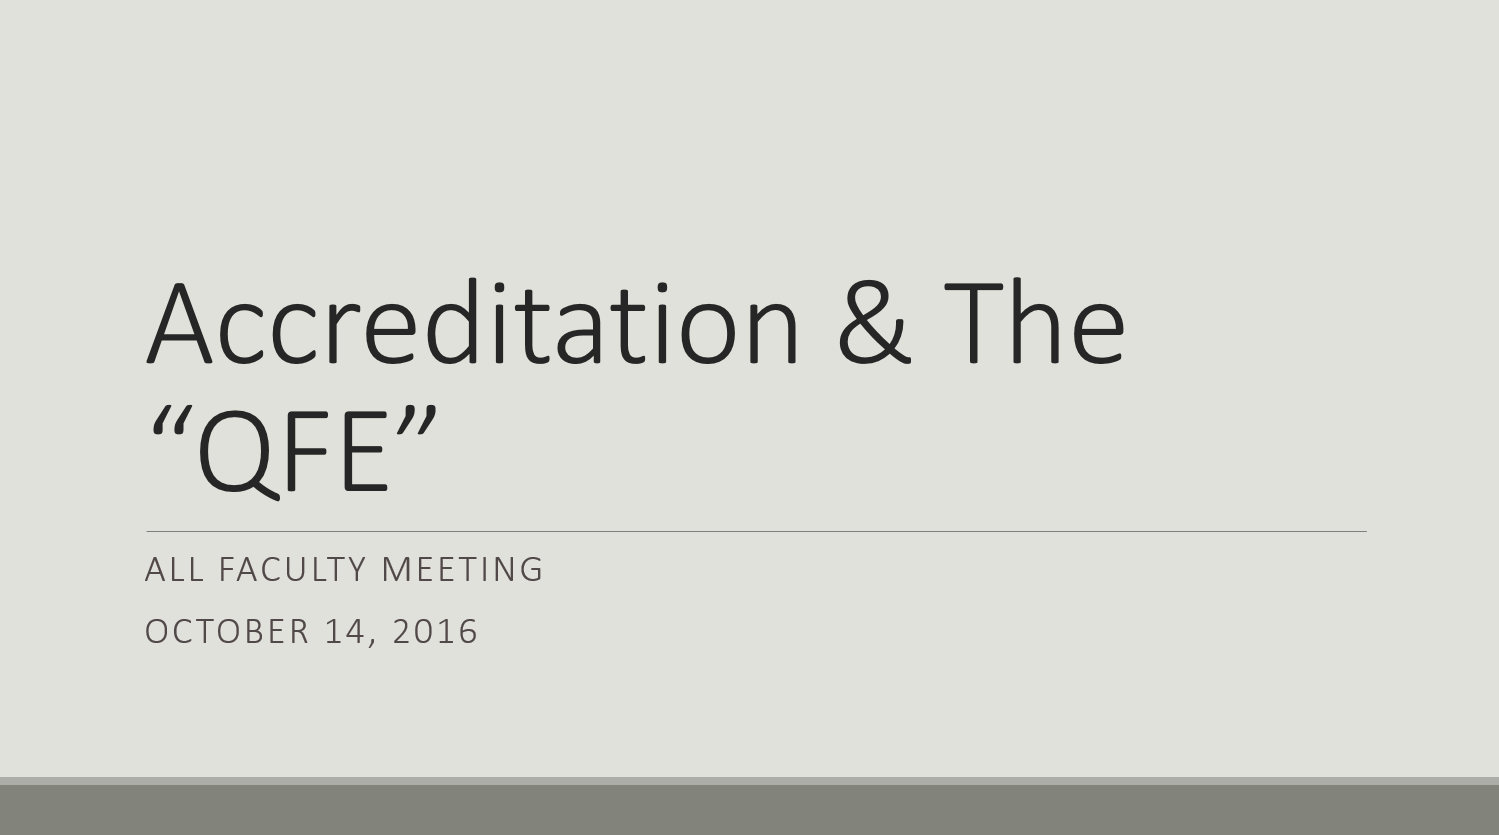 "Accreditation and the ""QFE"" - All Faculty Meeting, October 14, 2016"